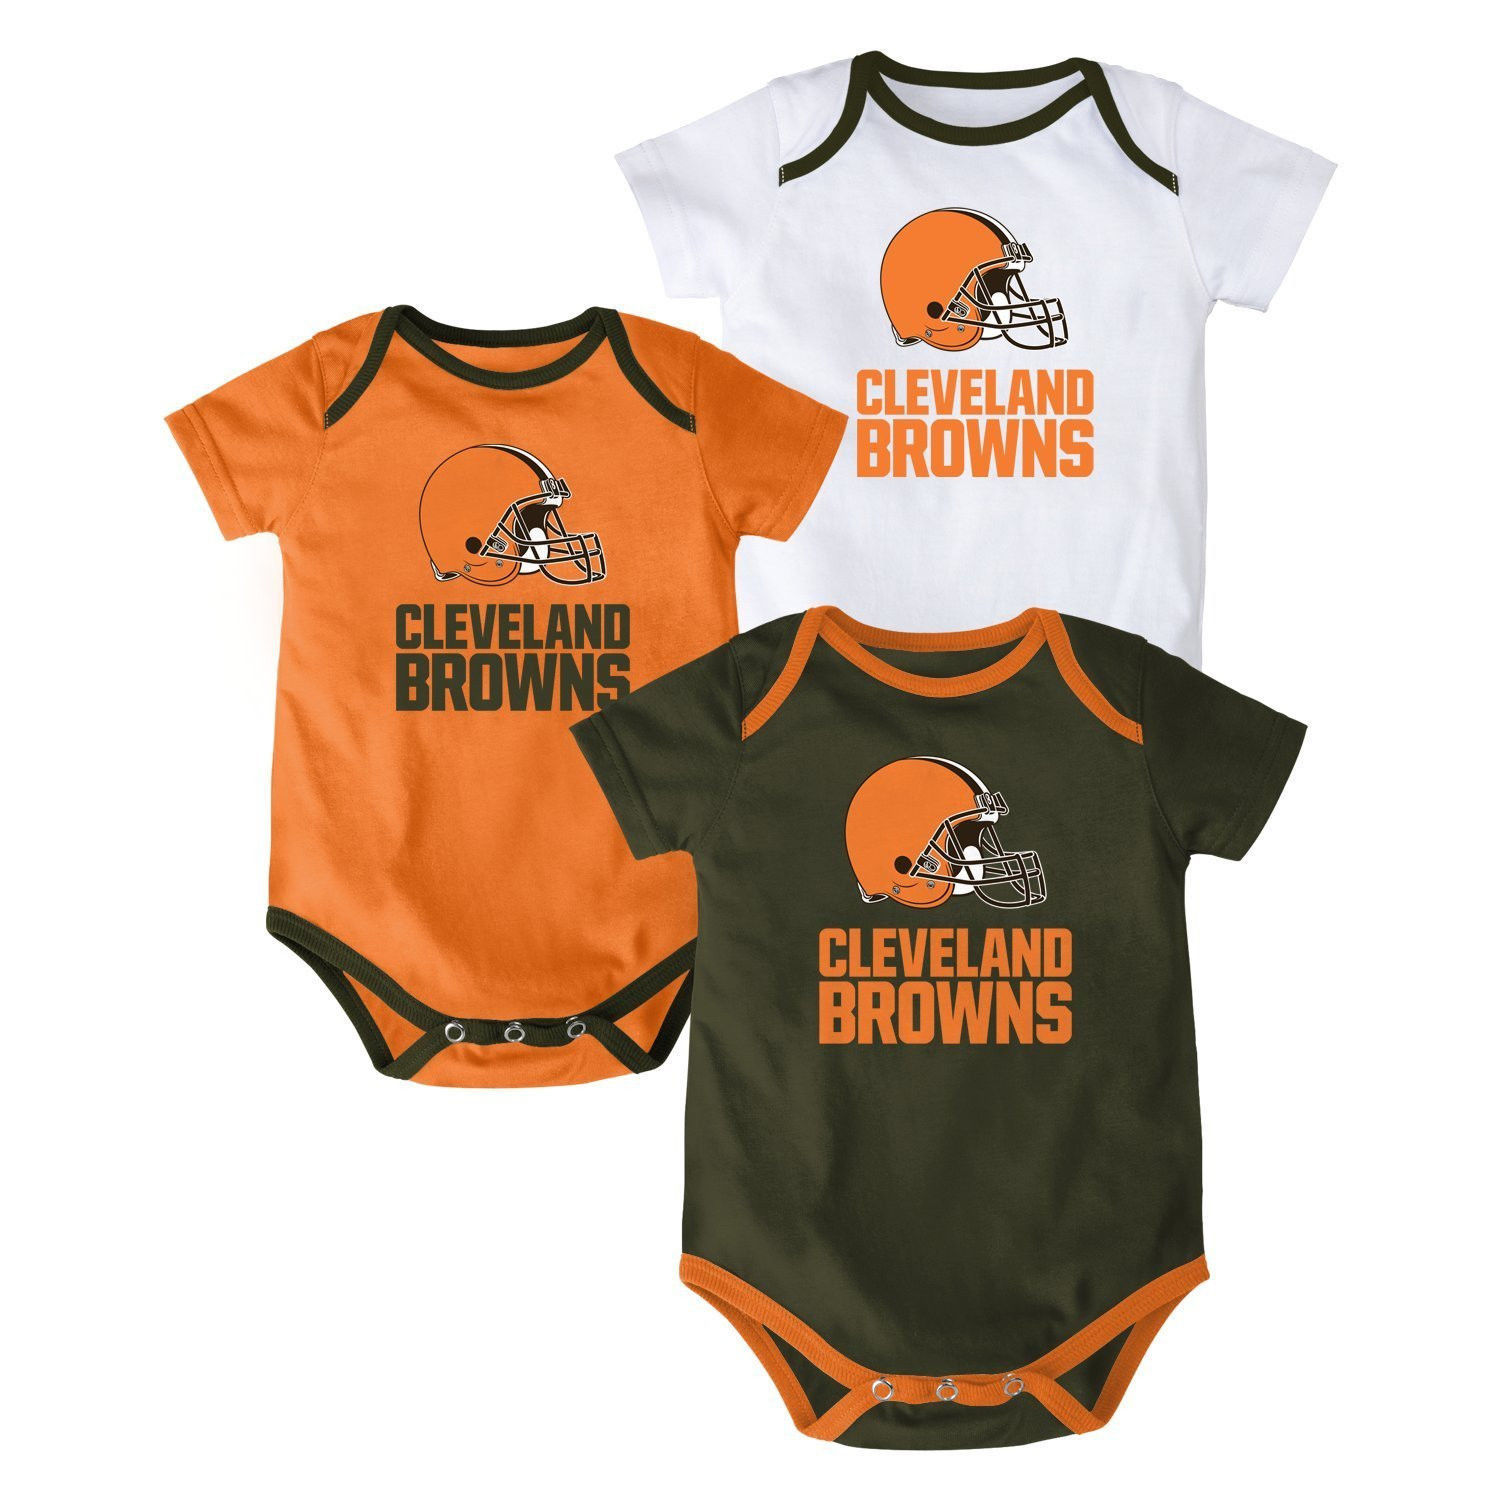 Cleveland Browns Infant Bodysuit NFL 3-point Spread Baby Set of 3 Shirts